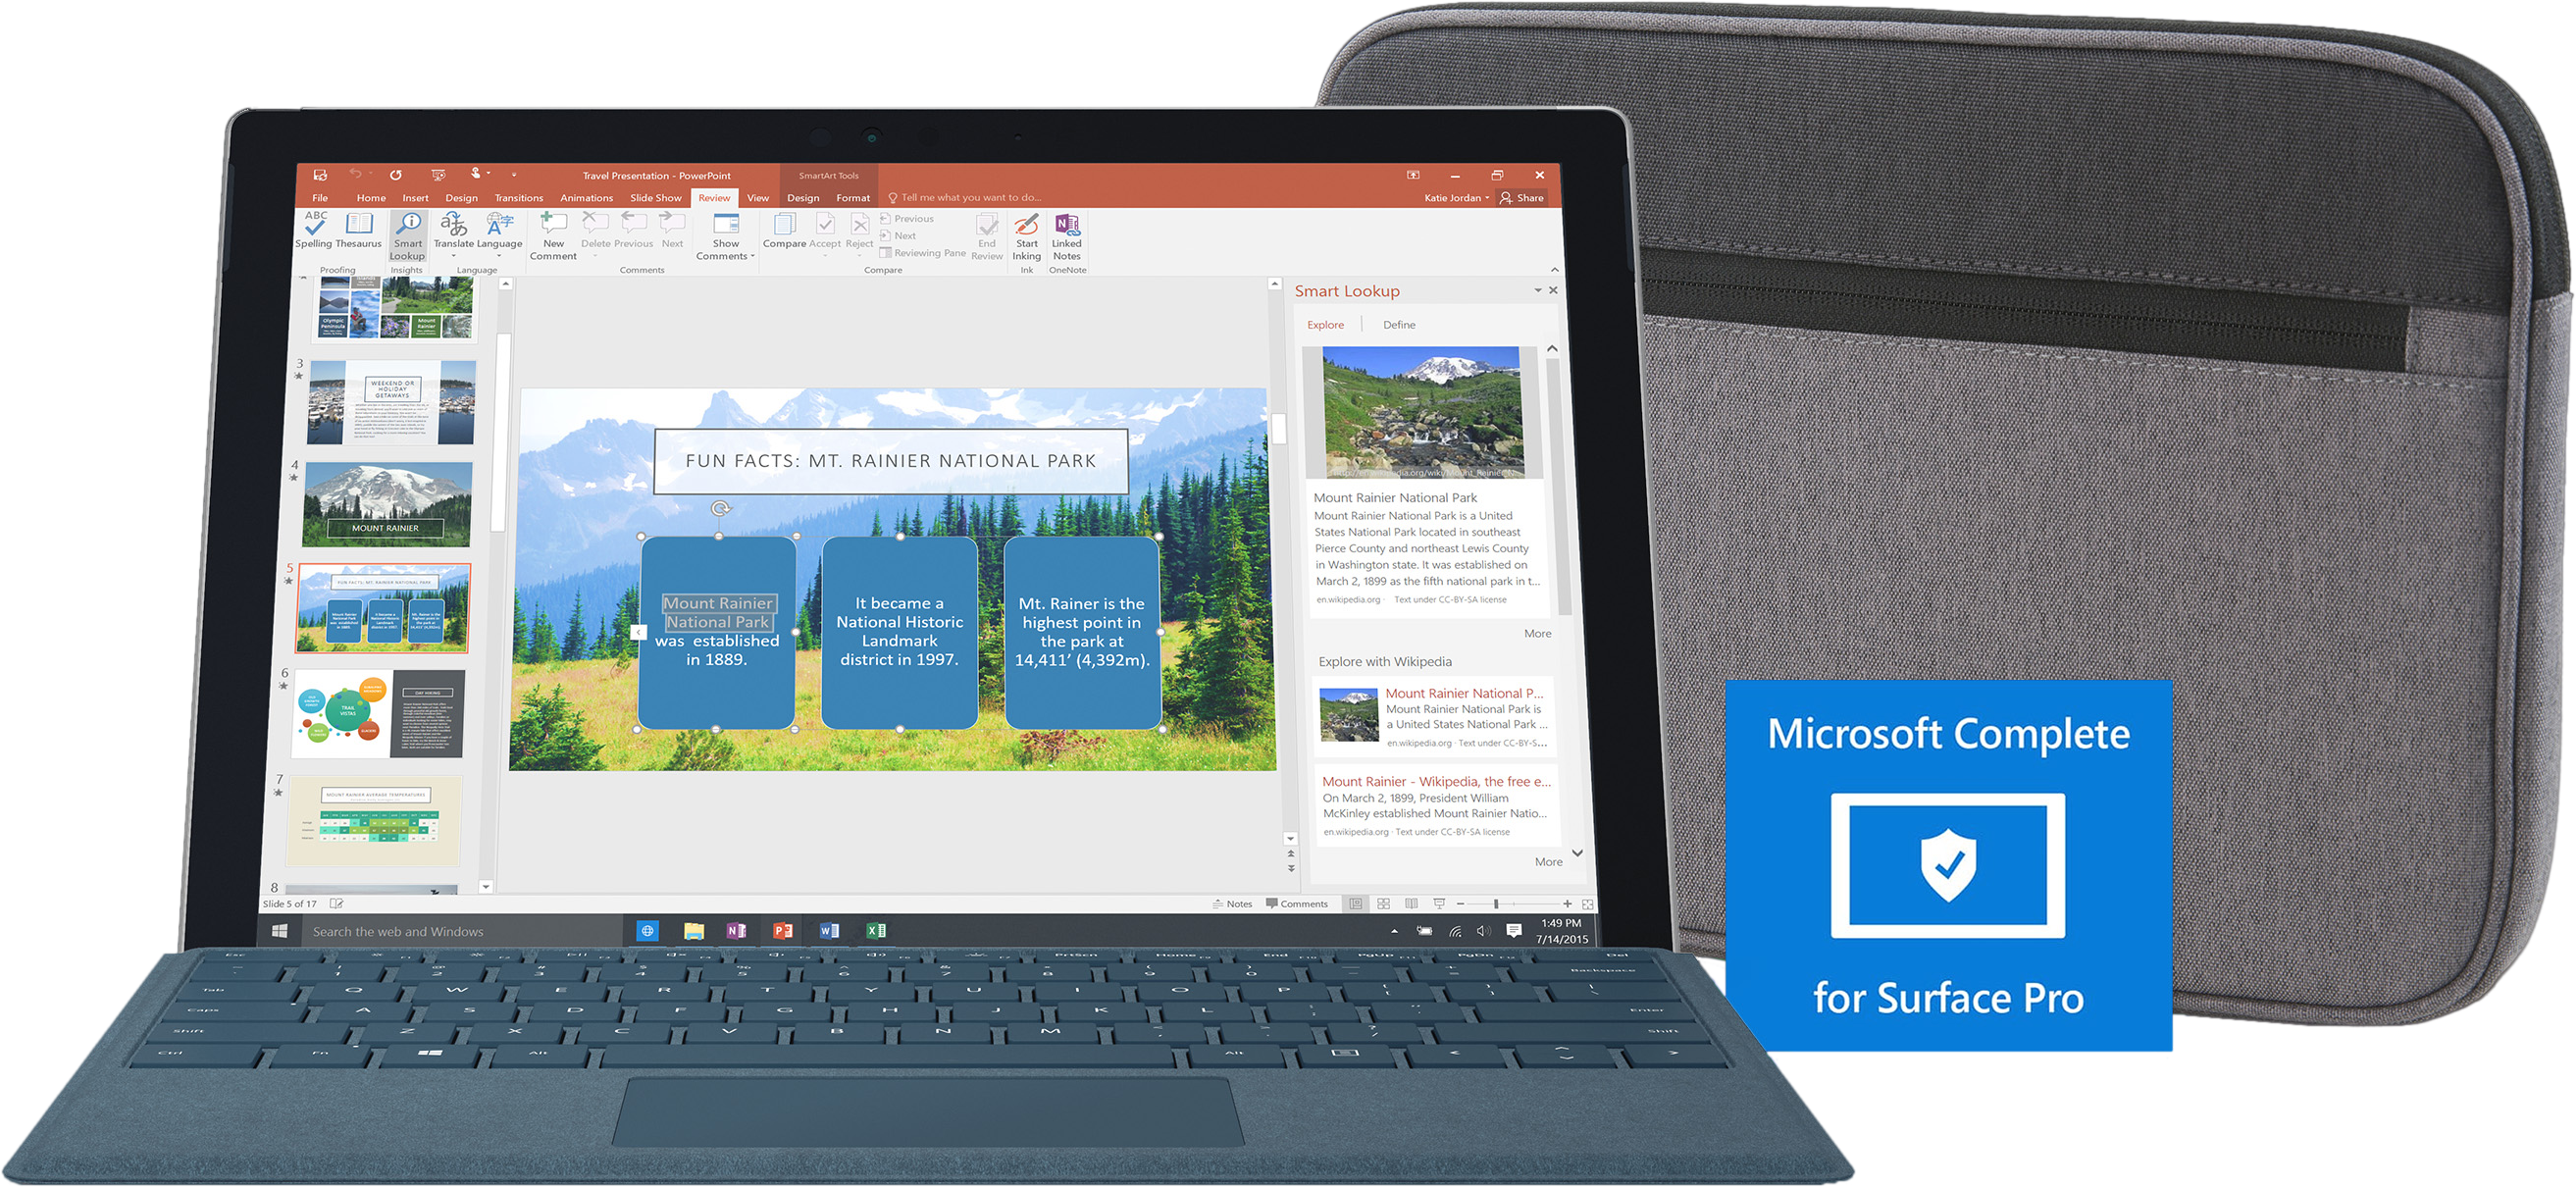 microsoft-surface-pro-3-coupon-code-2015-get-free-sleeve